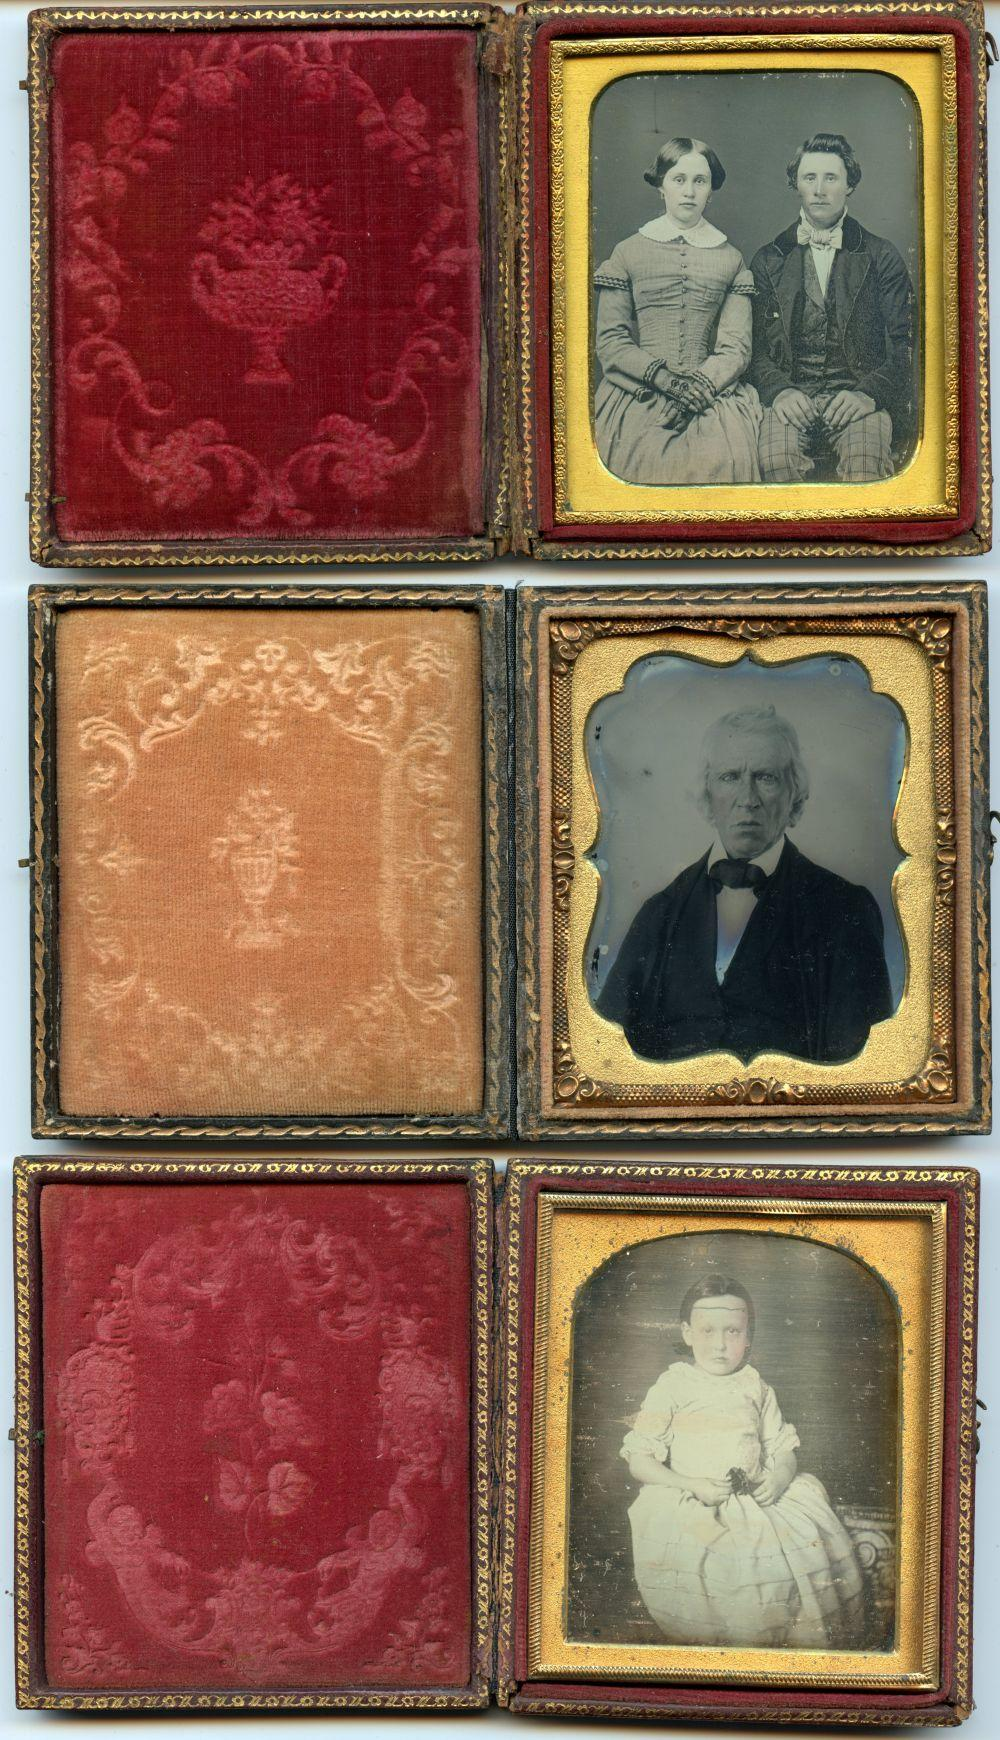 Three Great Images- Two Daguerreotypes, One Ambrotype